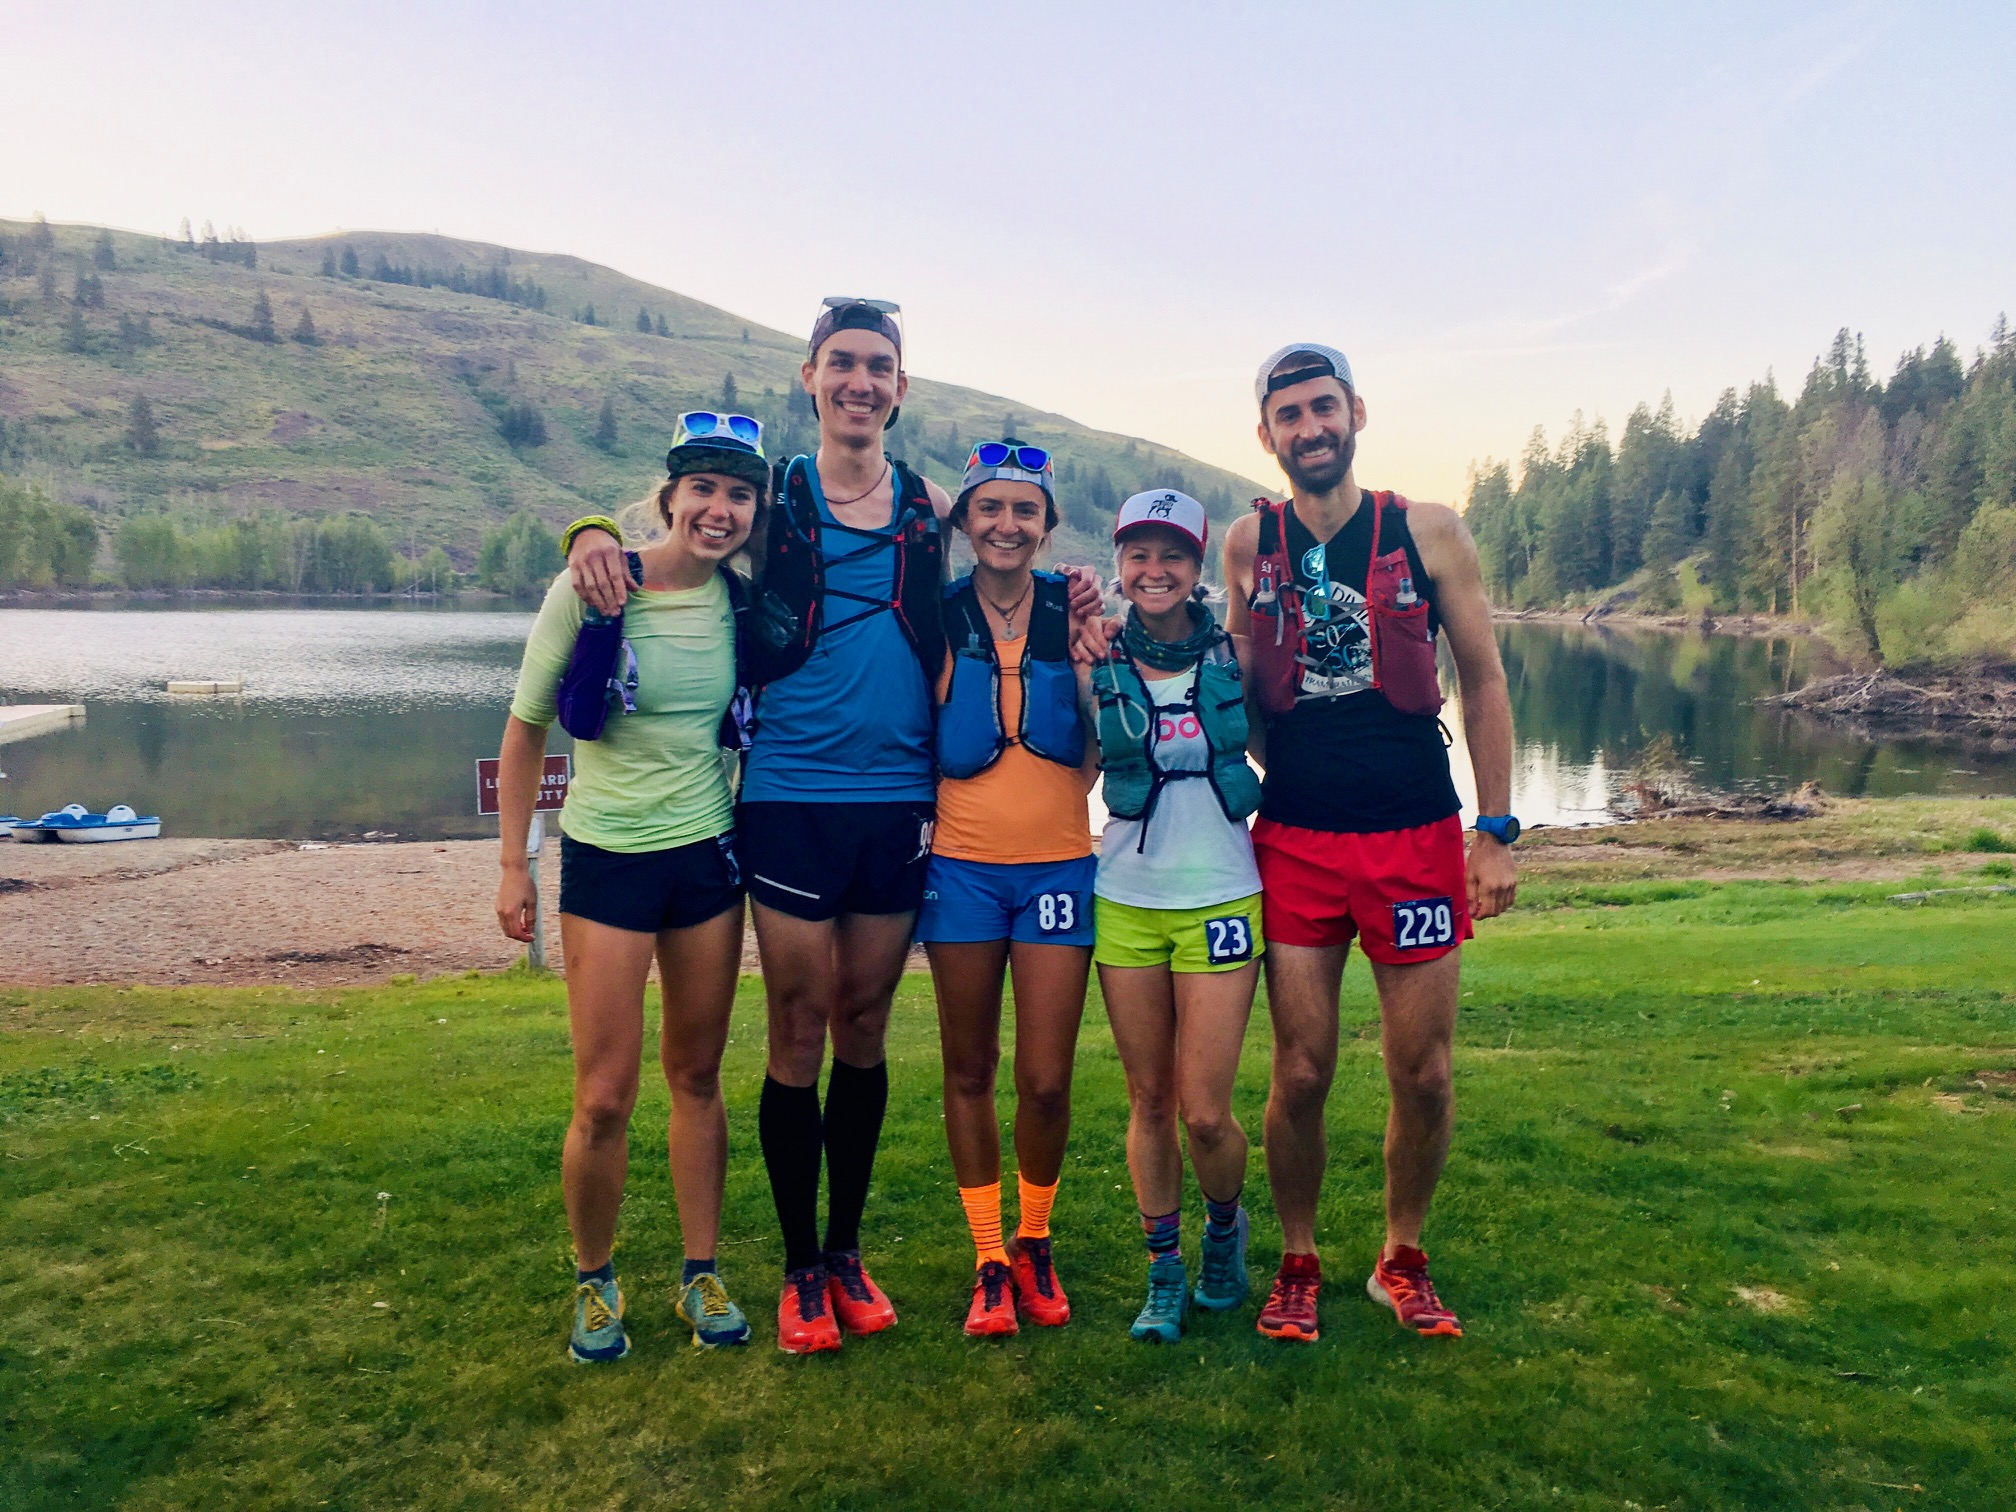 Hilary, Eamon, Me, Rhea, and Andrew looking super fresh right before the race. Can my socks be brighter? :)